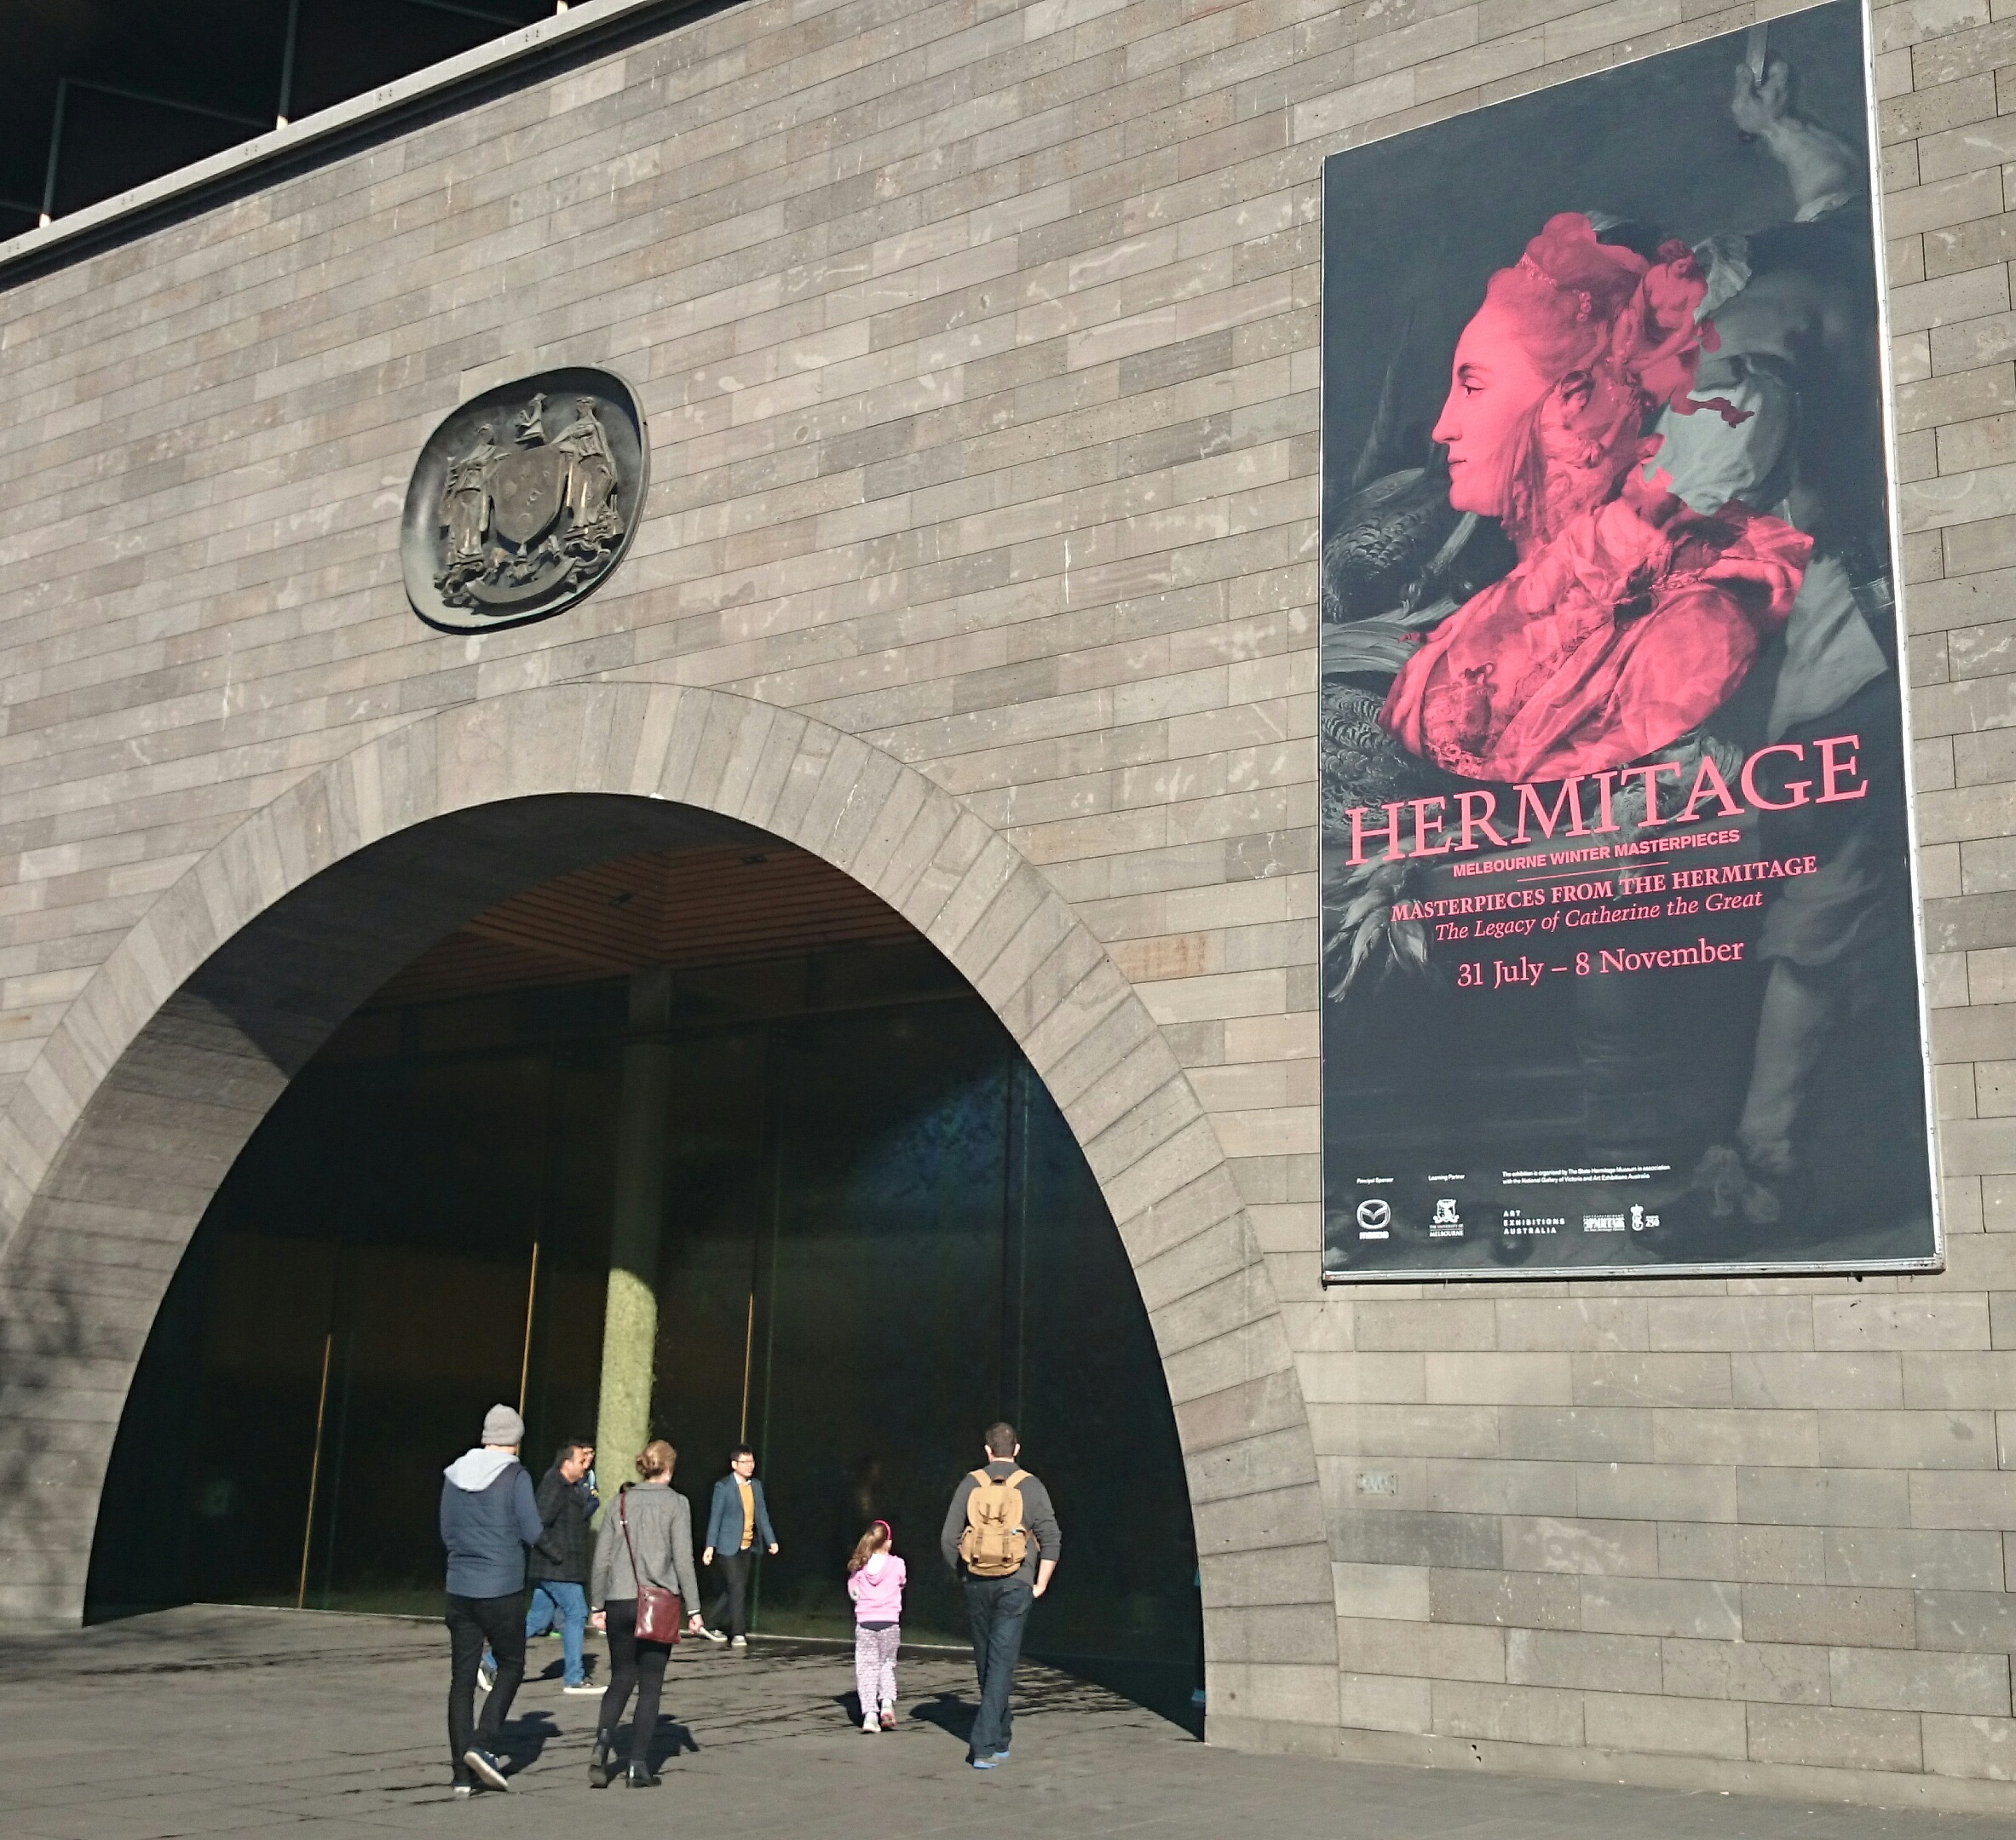 The National Gallery Victoria